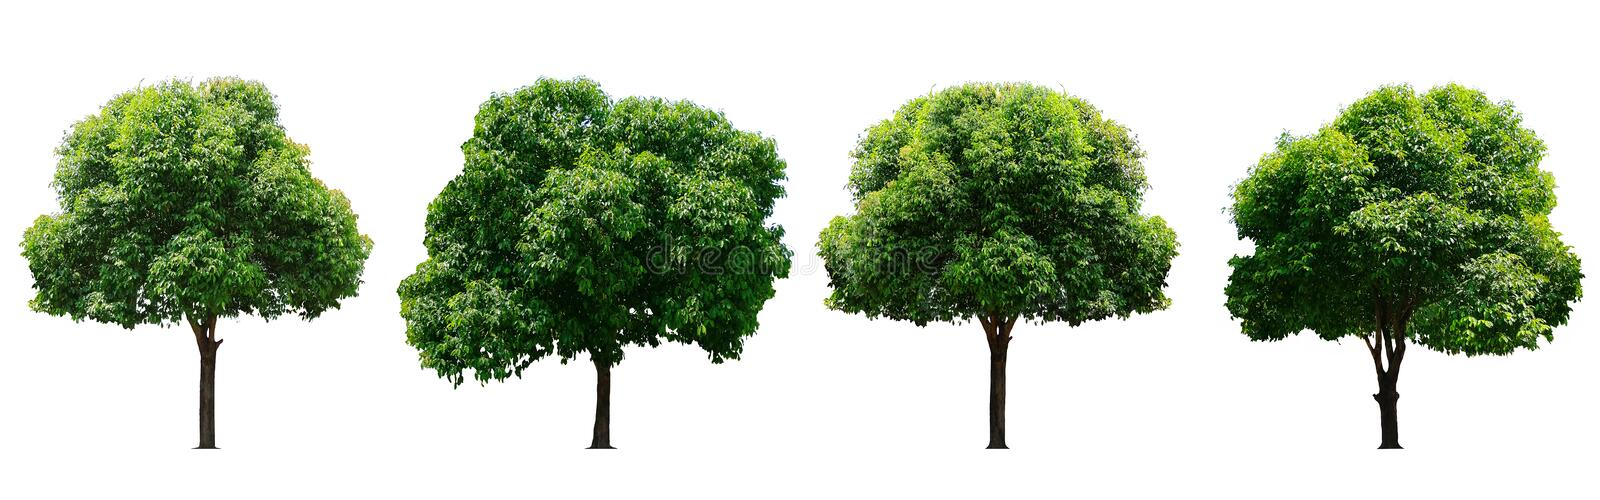 Beautiful fresh green deciduous tree isolated on pure white background for graphic, The collection of trees. stock image